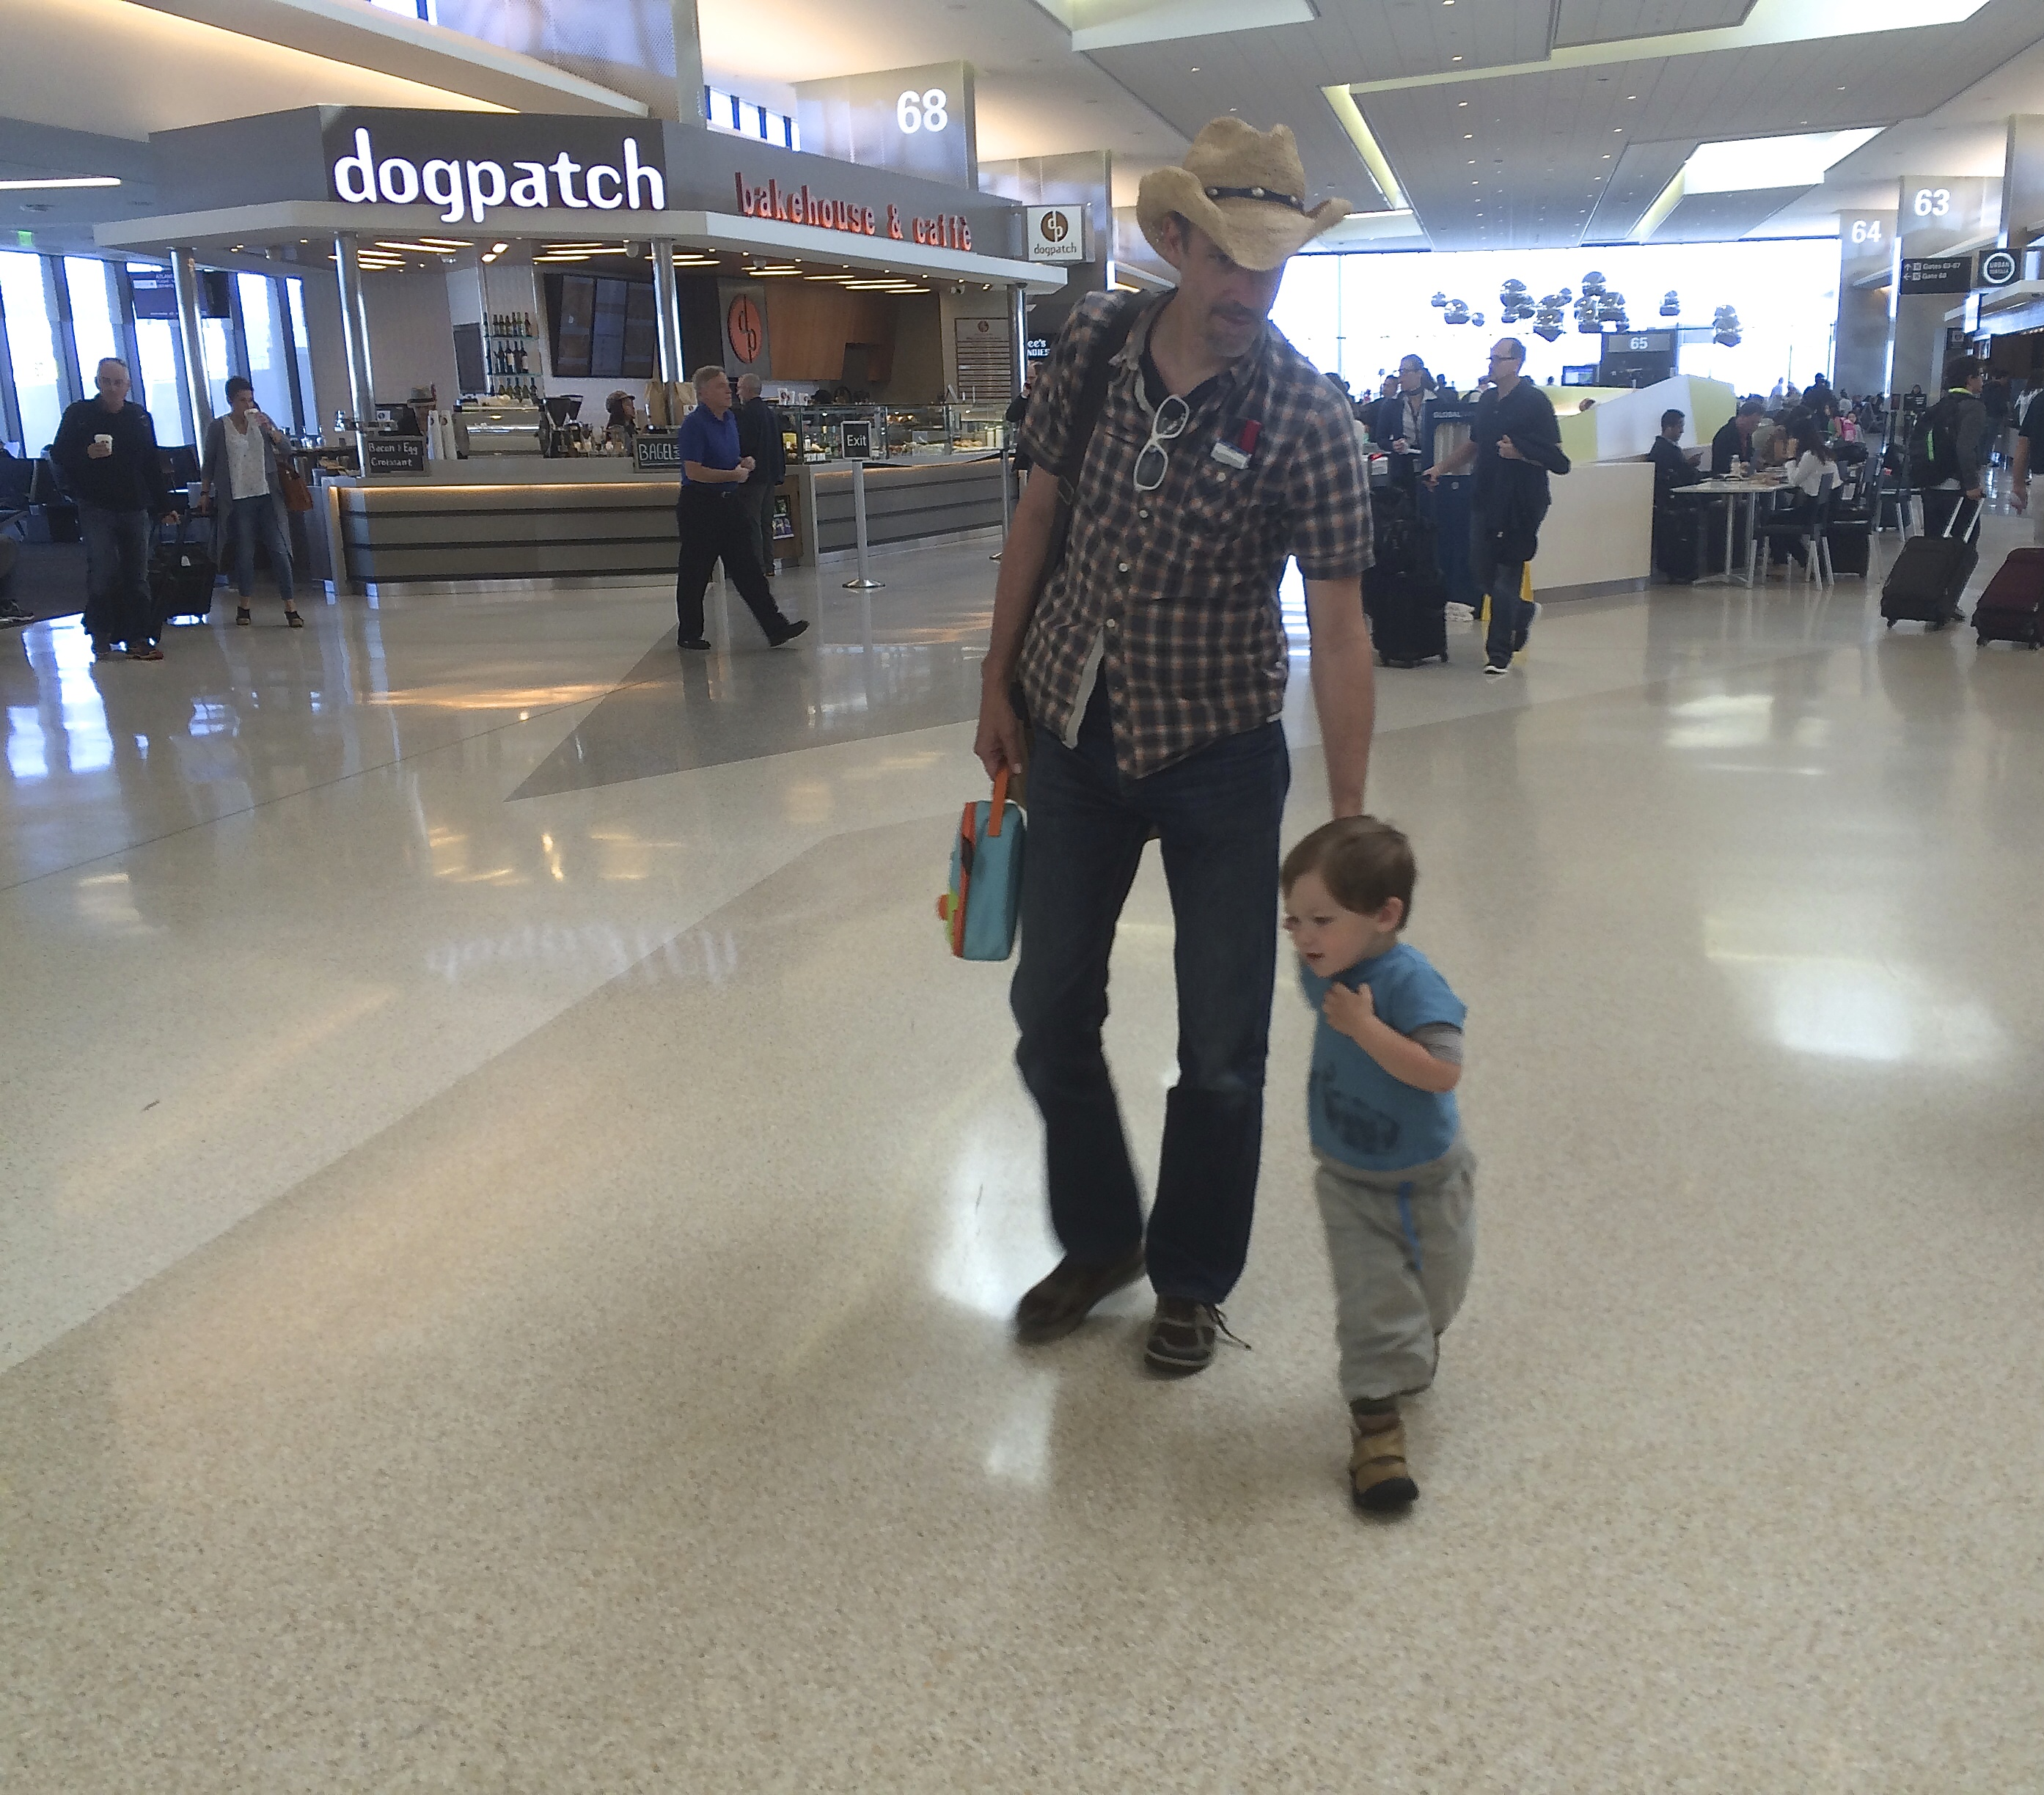 conor_dad_airport_holdinghands